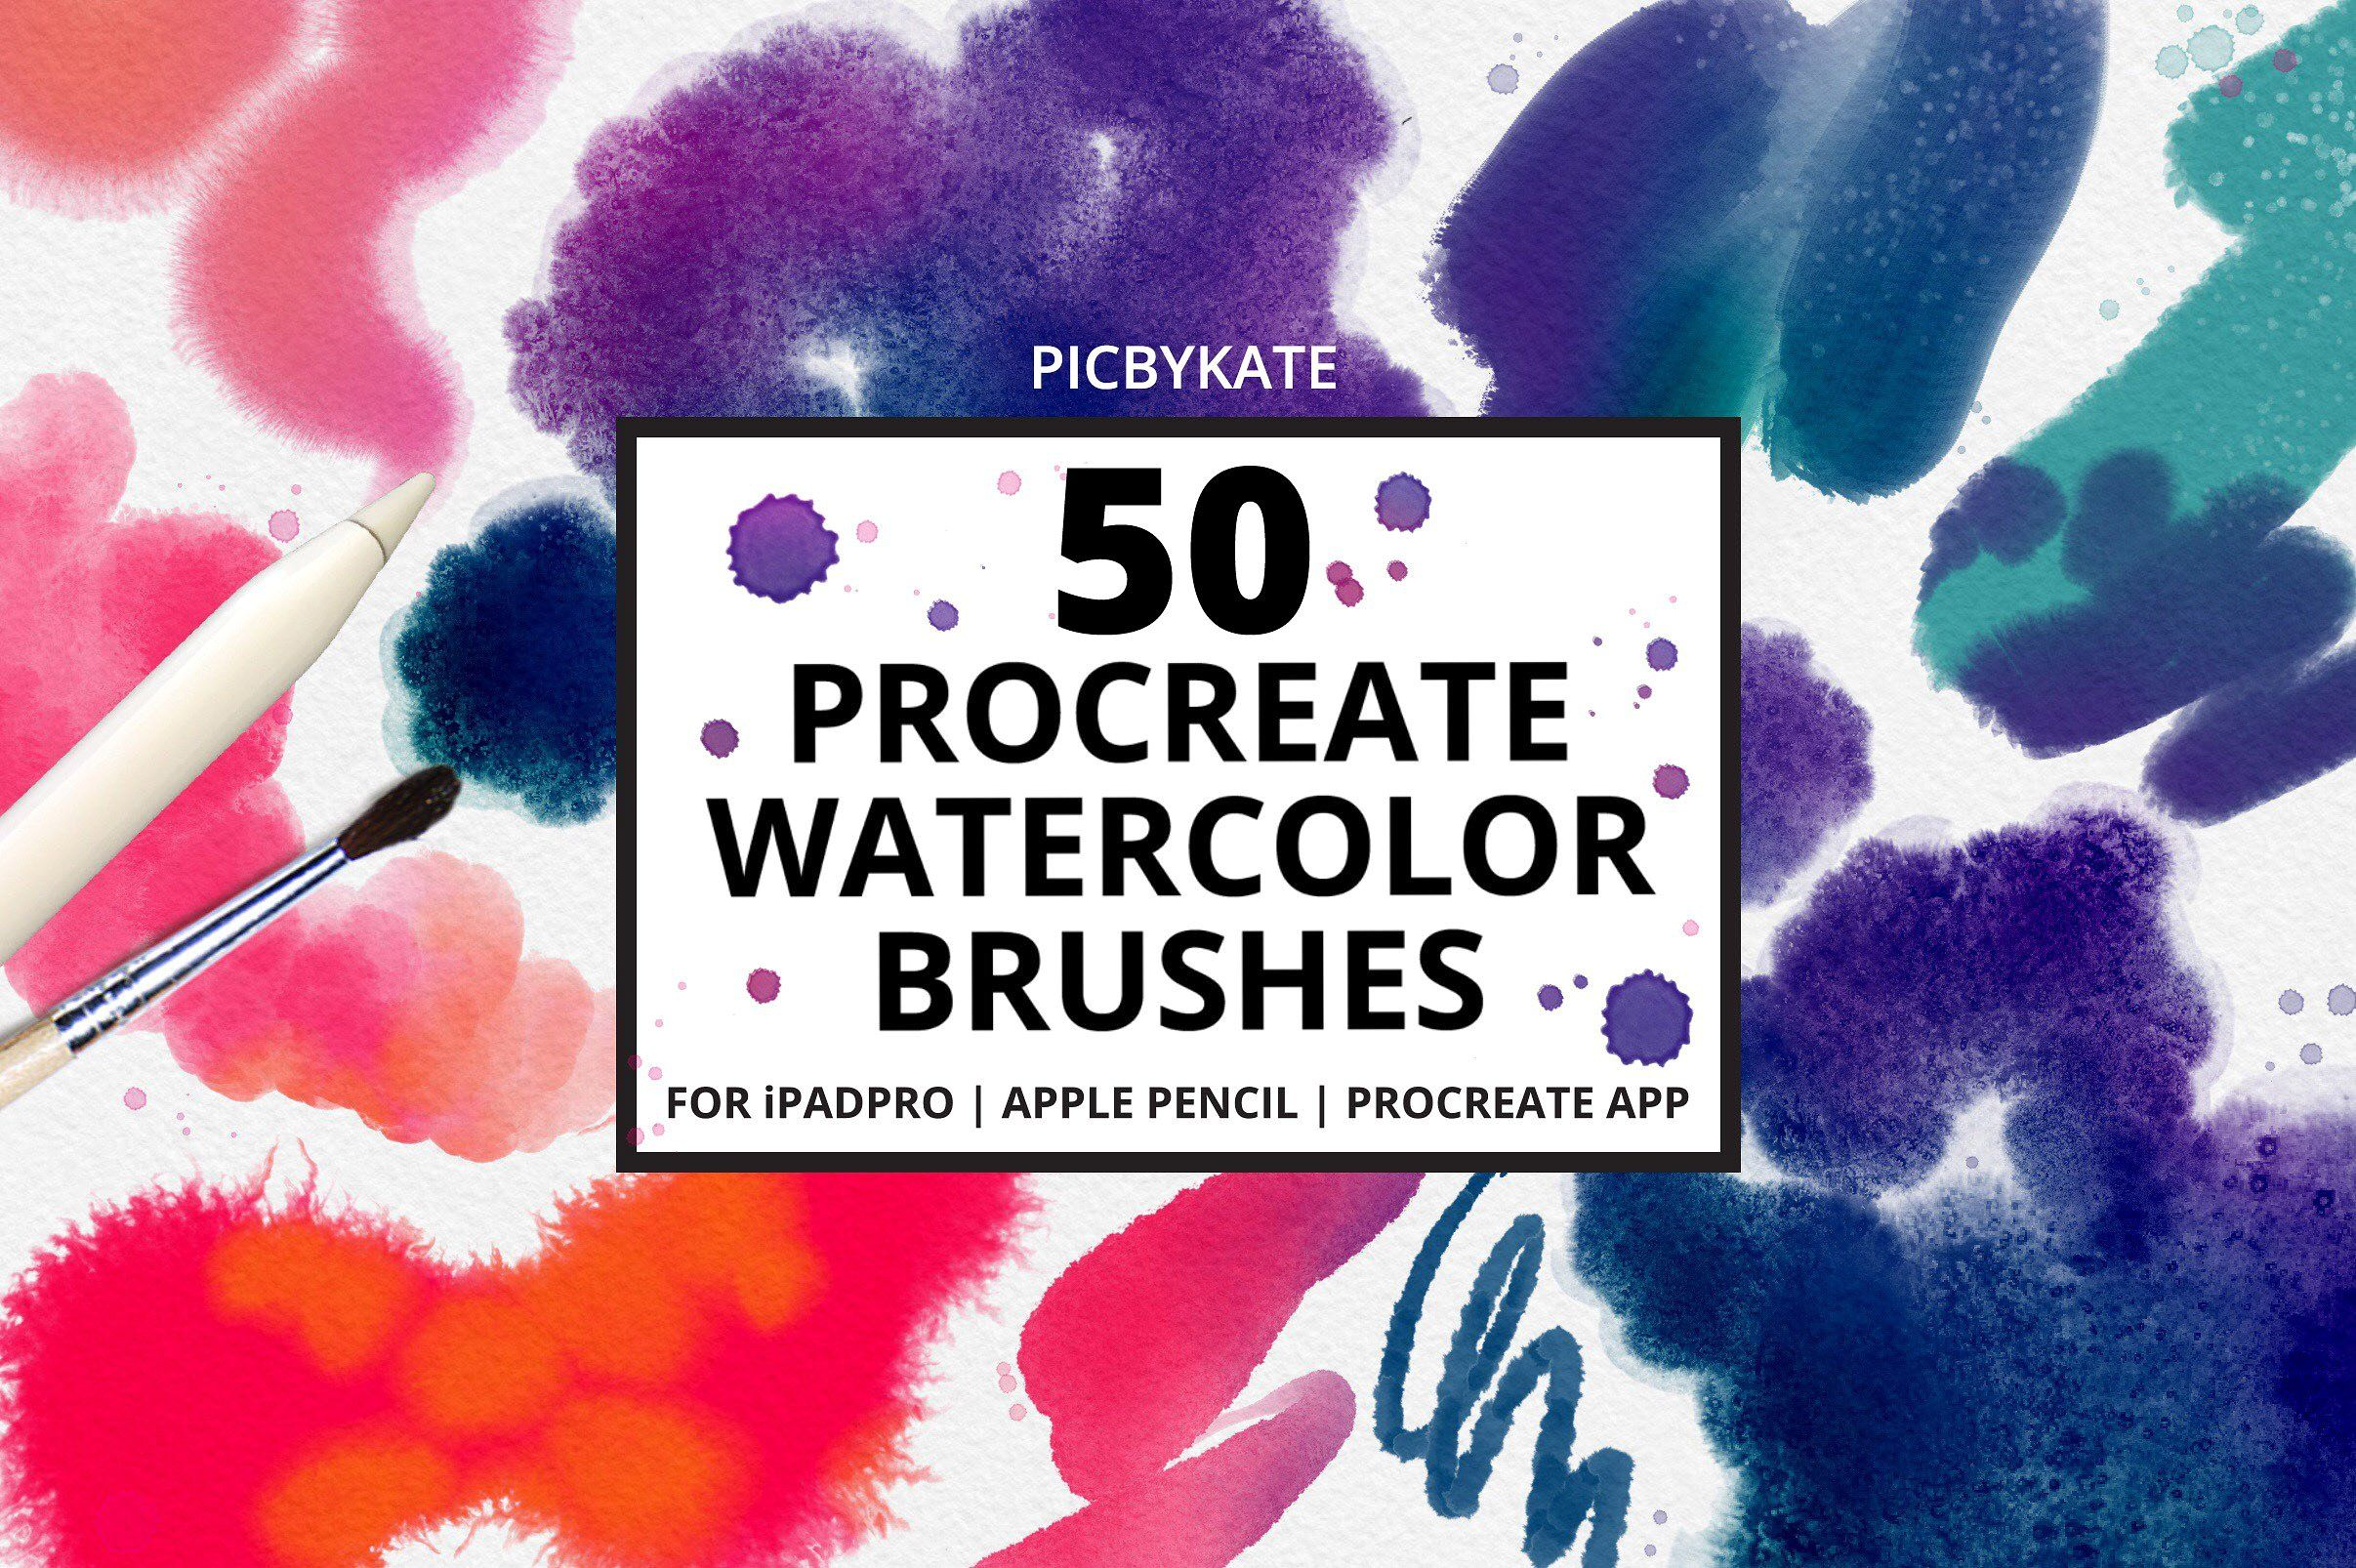 50 Procreate Watercolor Brushes In 2020 Watercolor Brushes